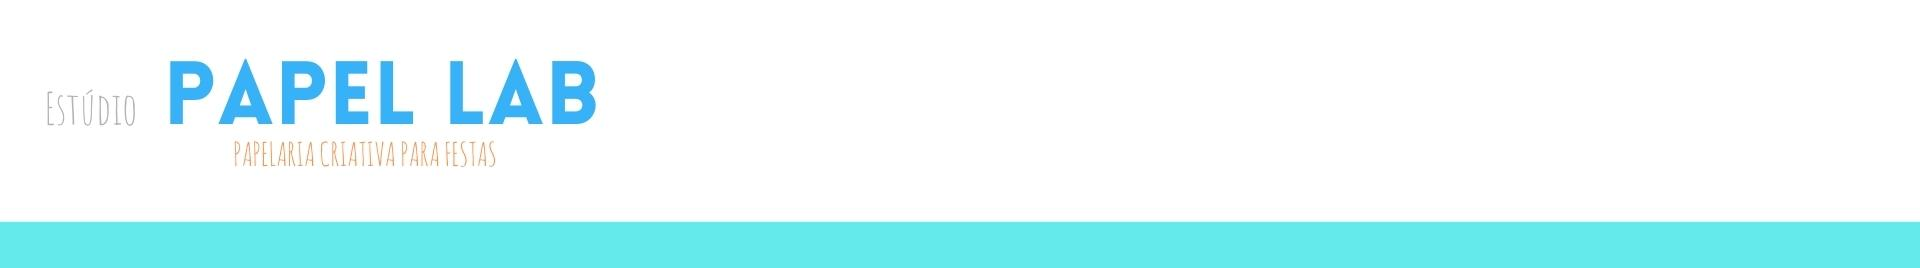 Estudio Papel Lab - Papelaria Criativa